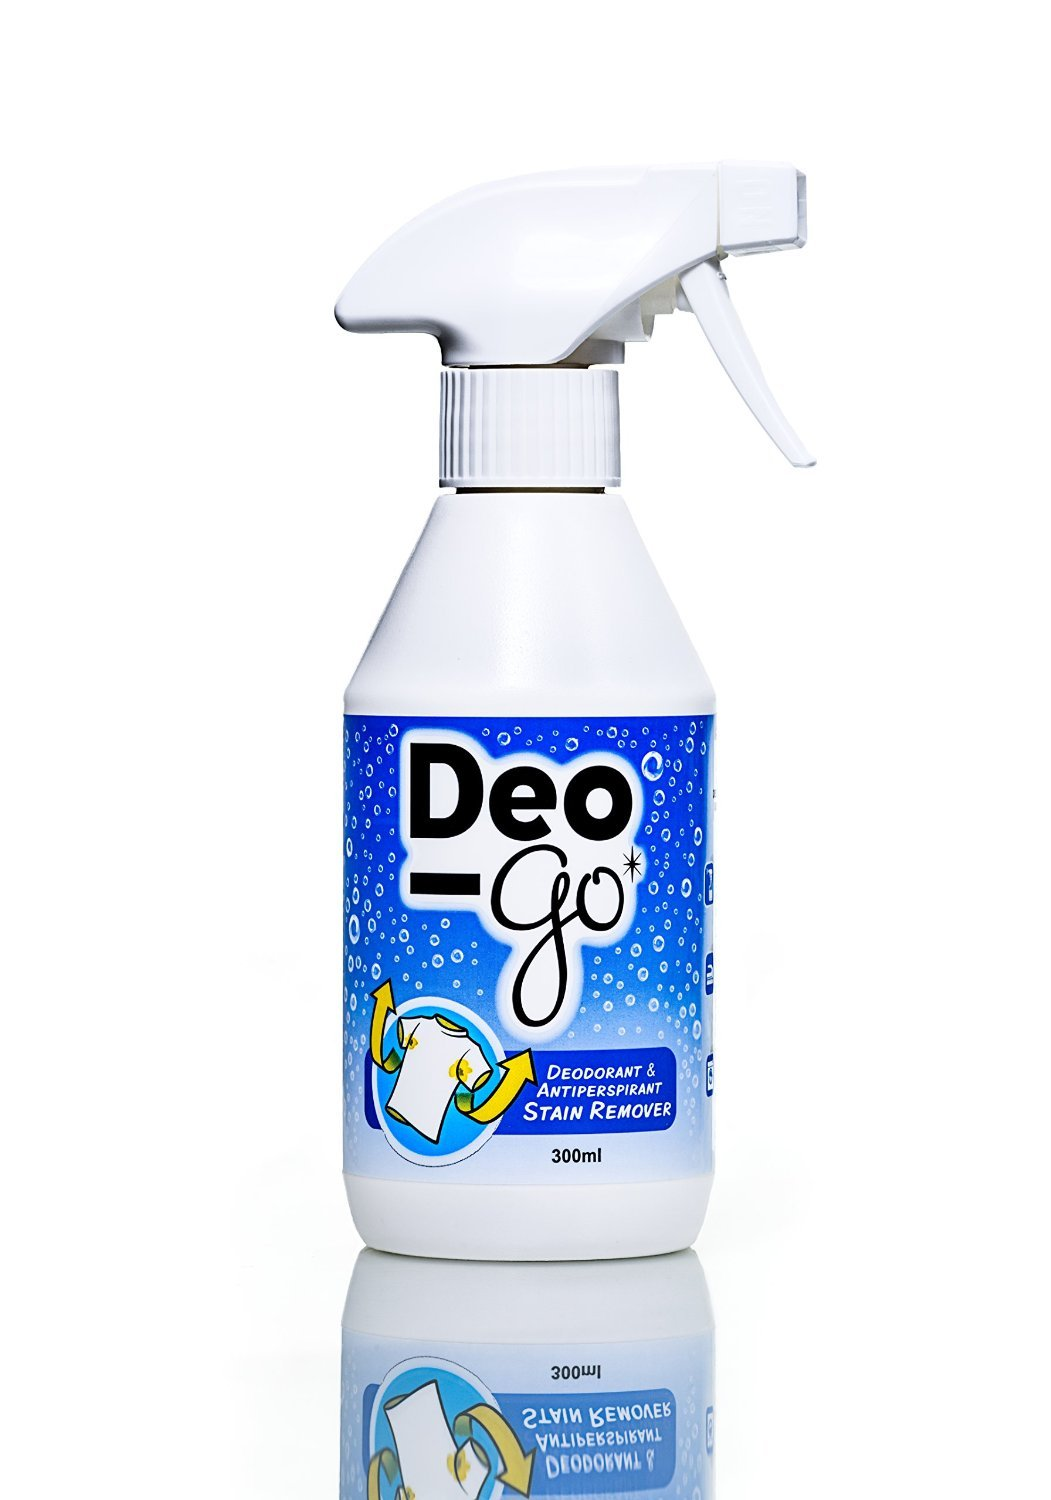 Deo-go desodorante antitranspirante y quitamanchas - 300 ml: Amazon.es: Hogar